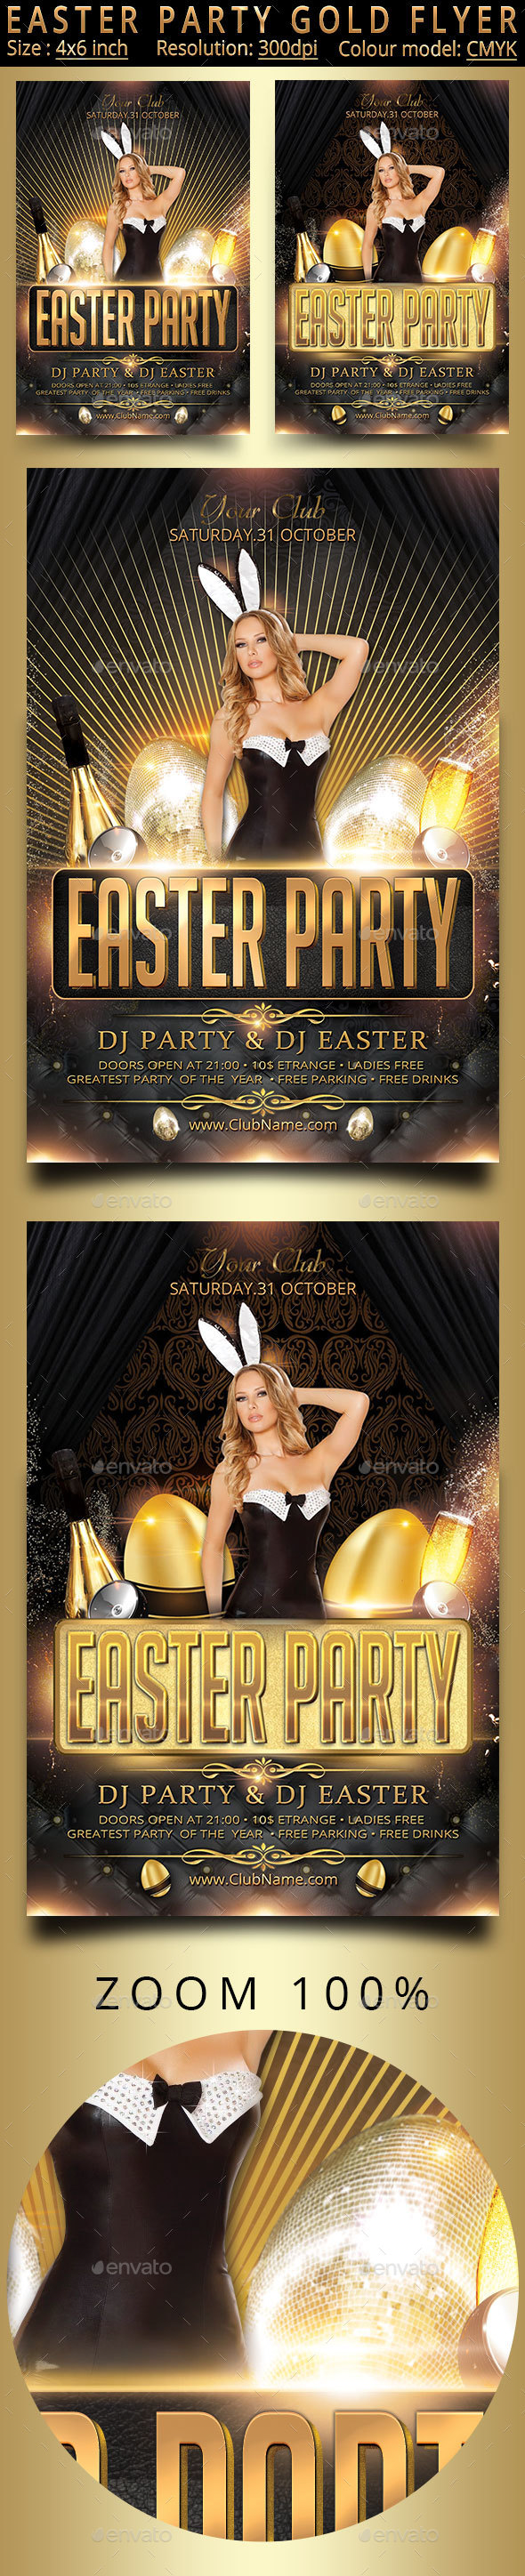 Easter Party Gold Flyer - Holidays Events